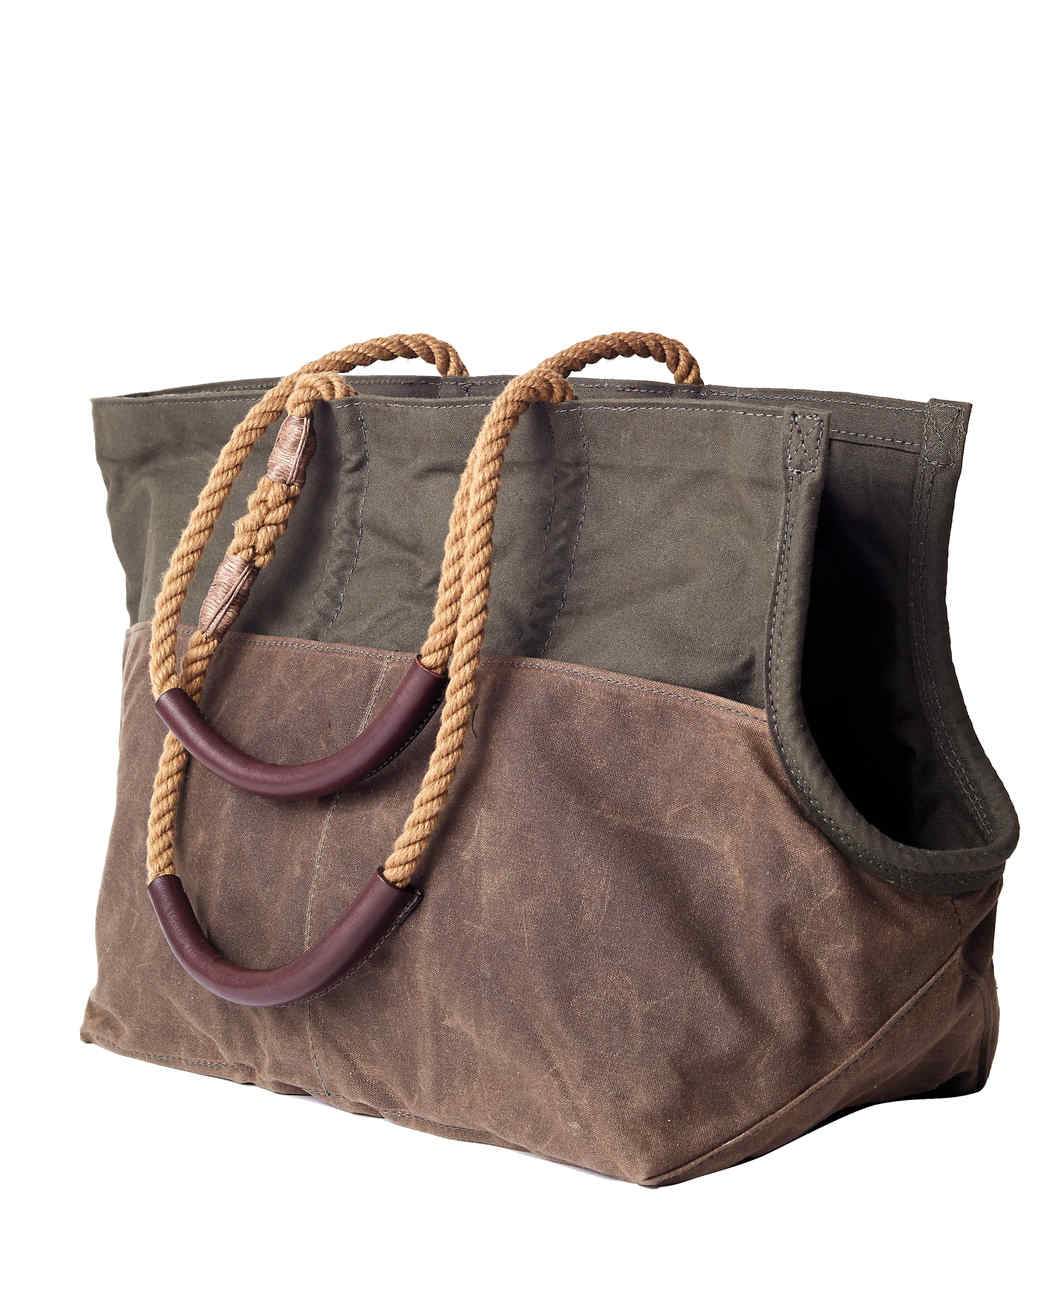 pet-carrier-brown-rope-207-d111550.jpg